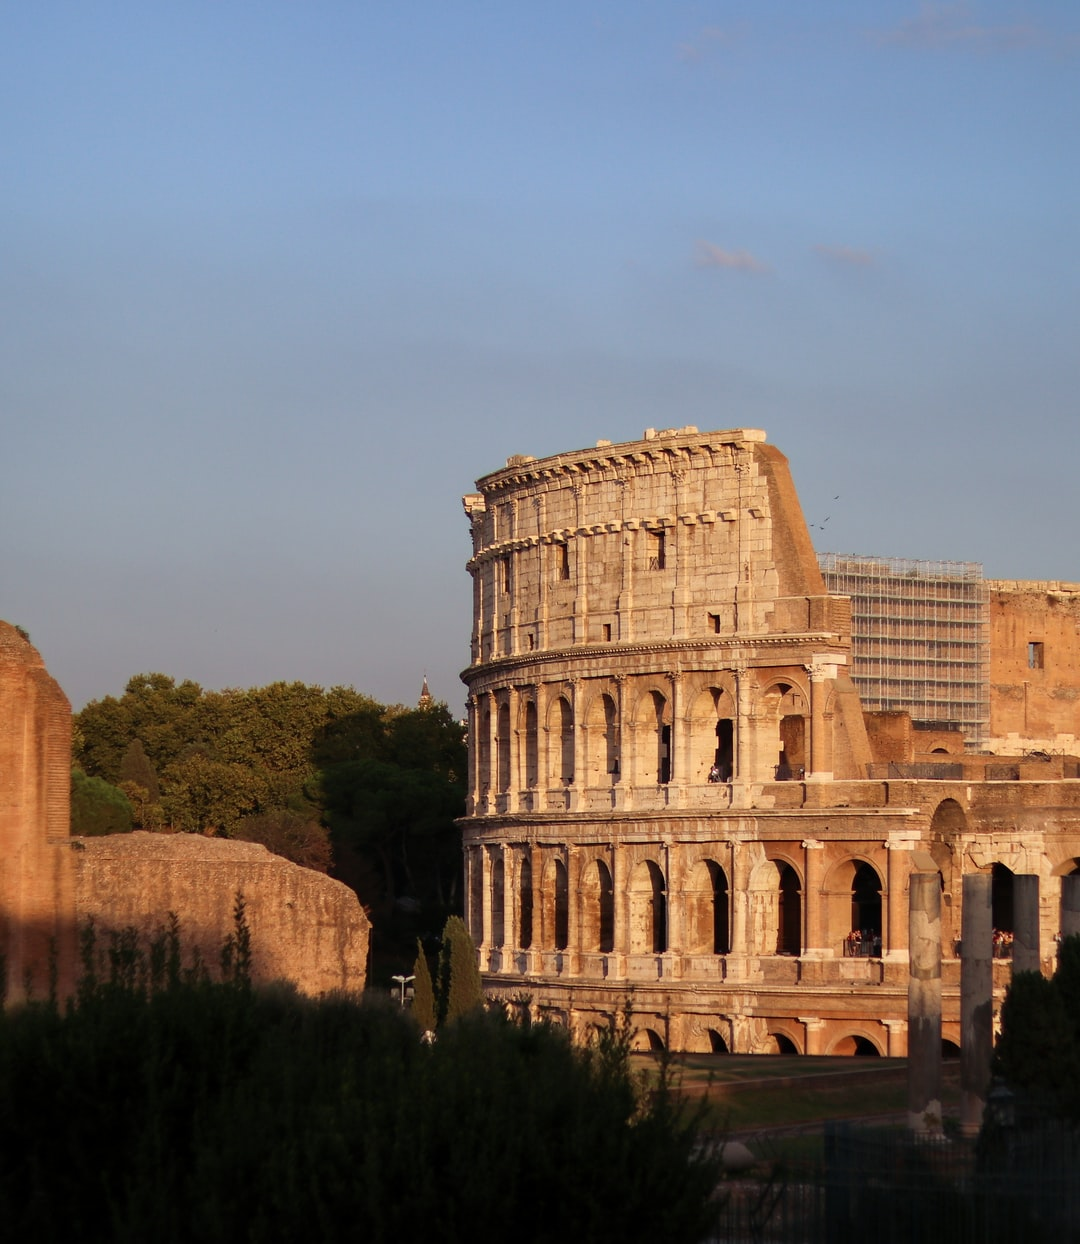 View of the Colloseum from Roman Forums